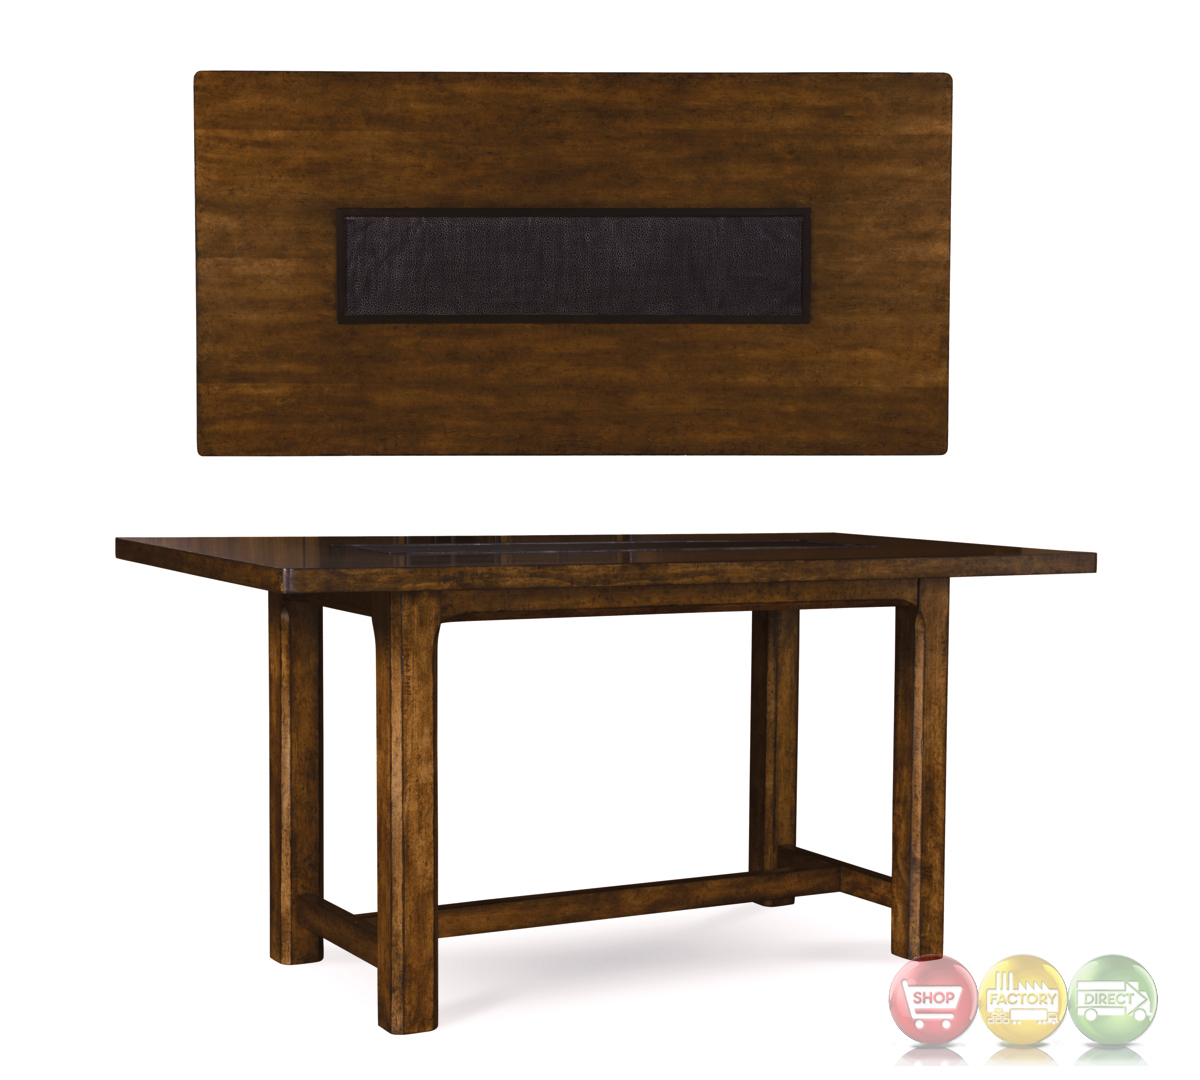 Echo Park Stipple Stained Birch Counter Height Dining Table : echo park stipple stained birch counter height dining table 10 from shopfactorydirect.com size 1200 x 1080 jpeg 335kB